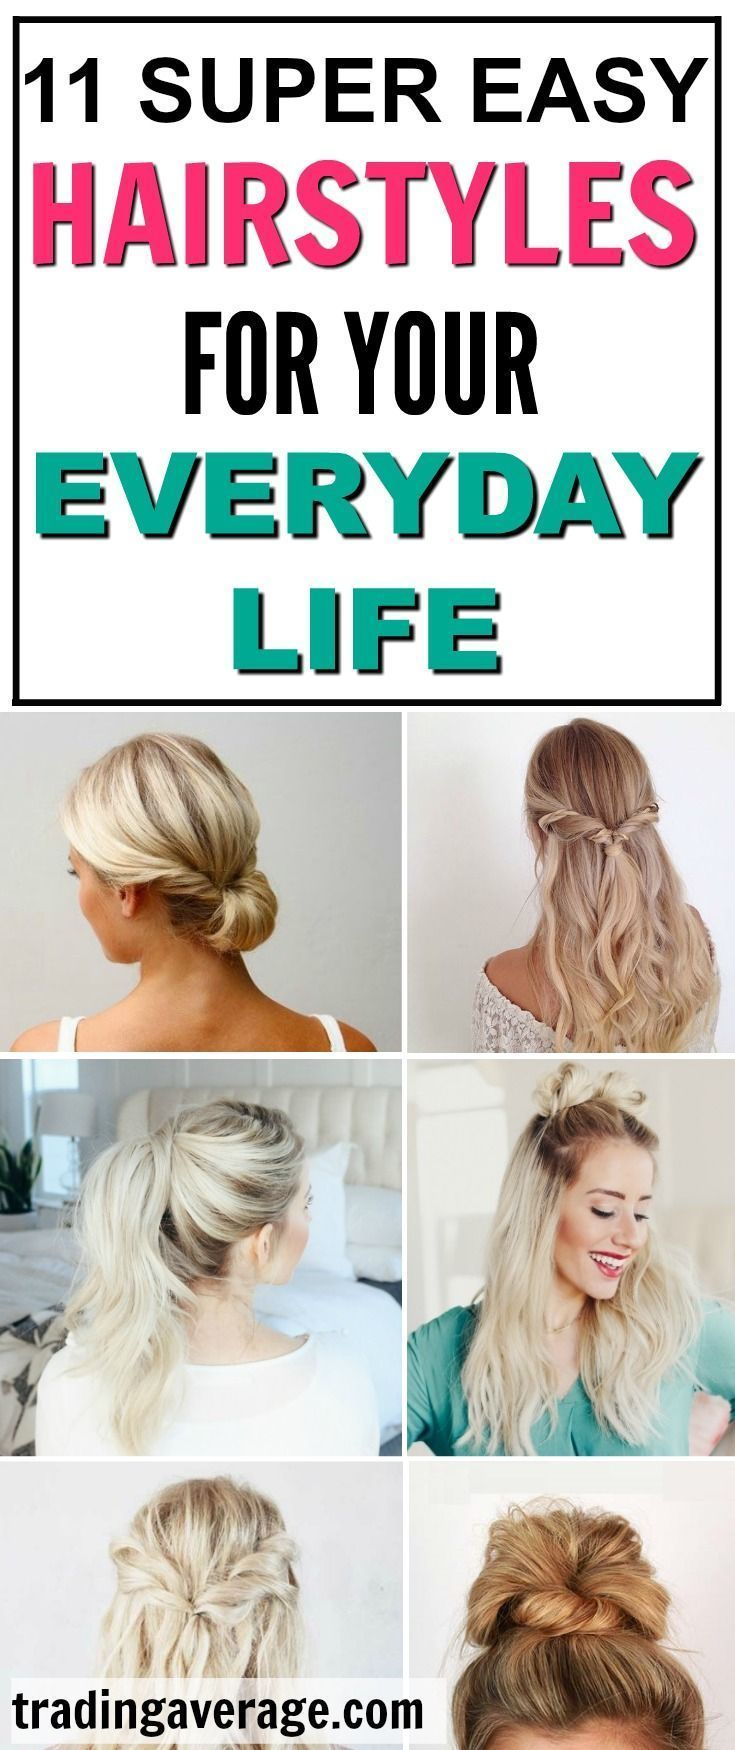 11 Super Easy Hairstyles for Everyday Life #easyupdo